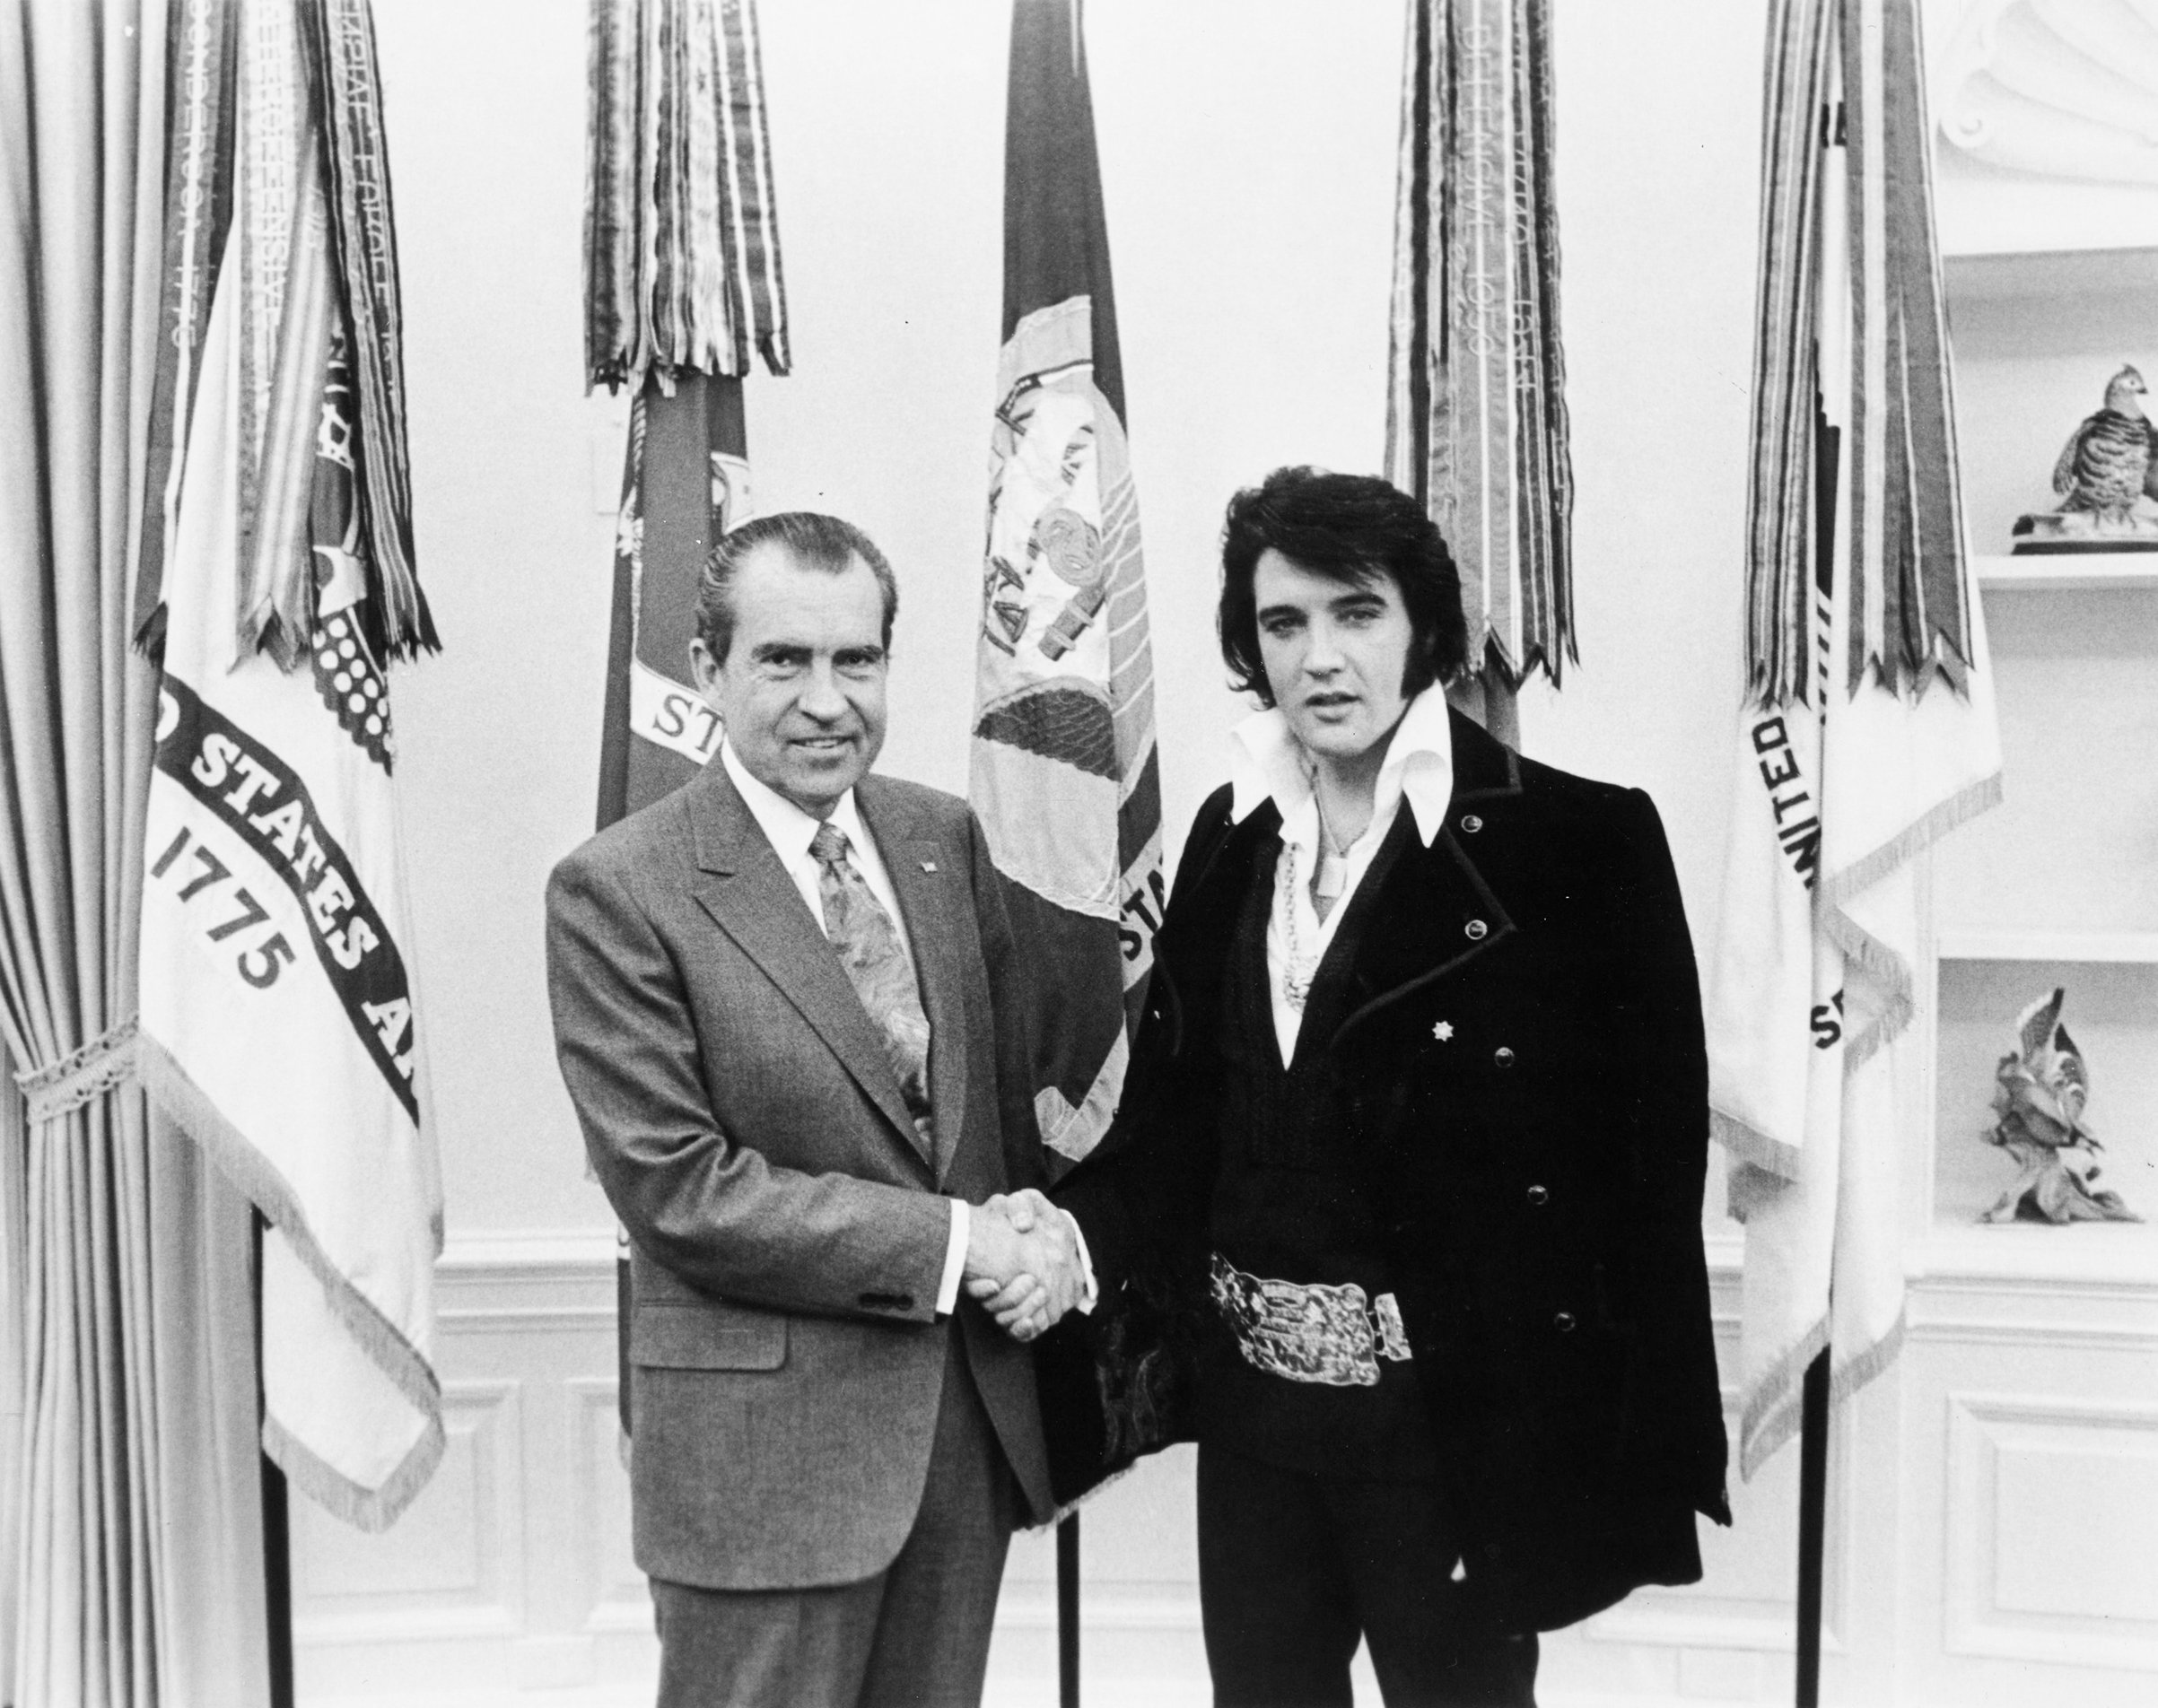 Elvis Presley and Richard Nixon: The Story Behind the Photo | Time